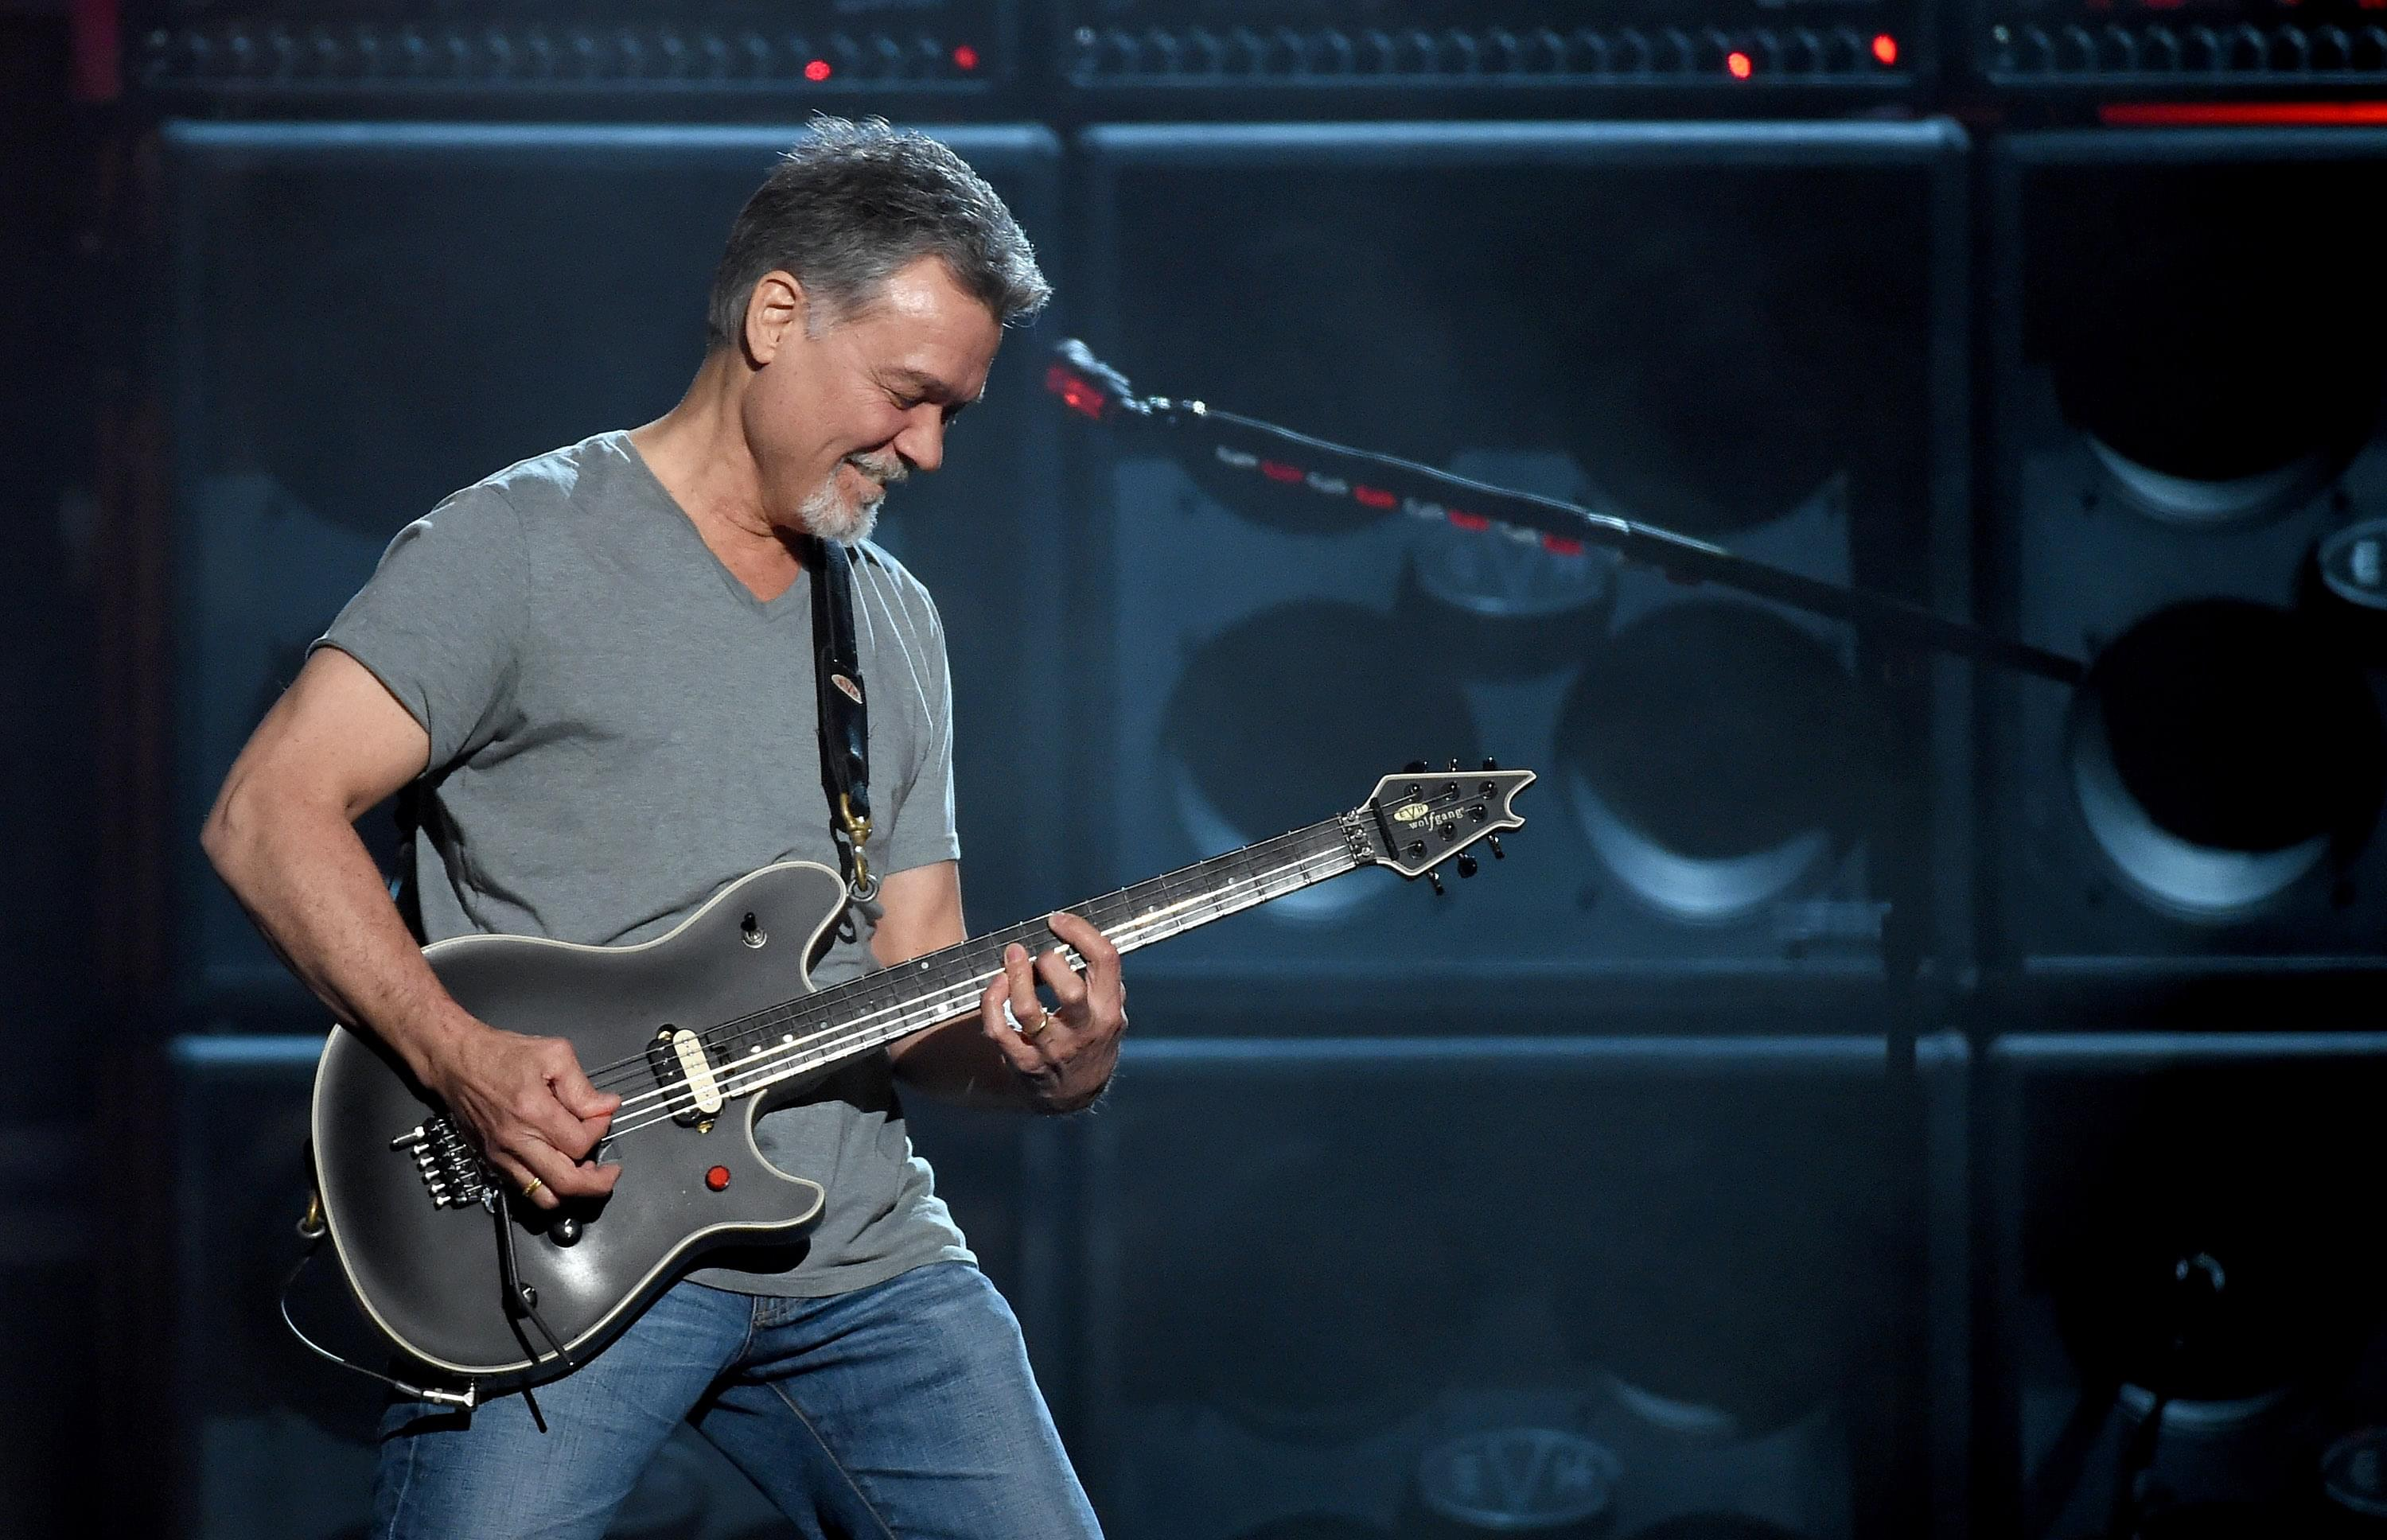 REPORT: Eddie Van Halen hospitalized for bad reaction to cancer medicine